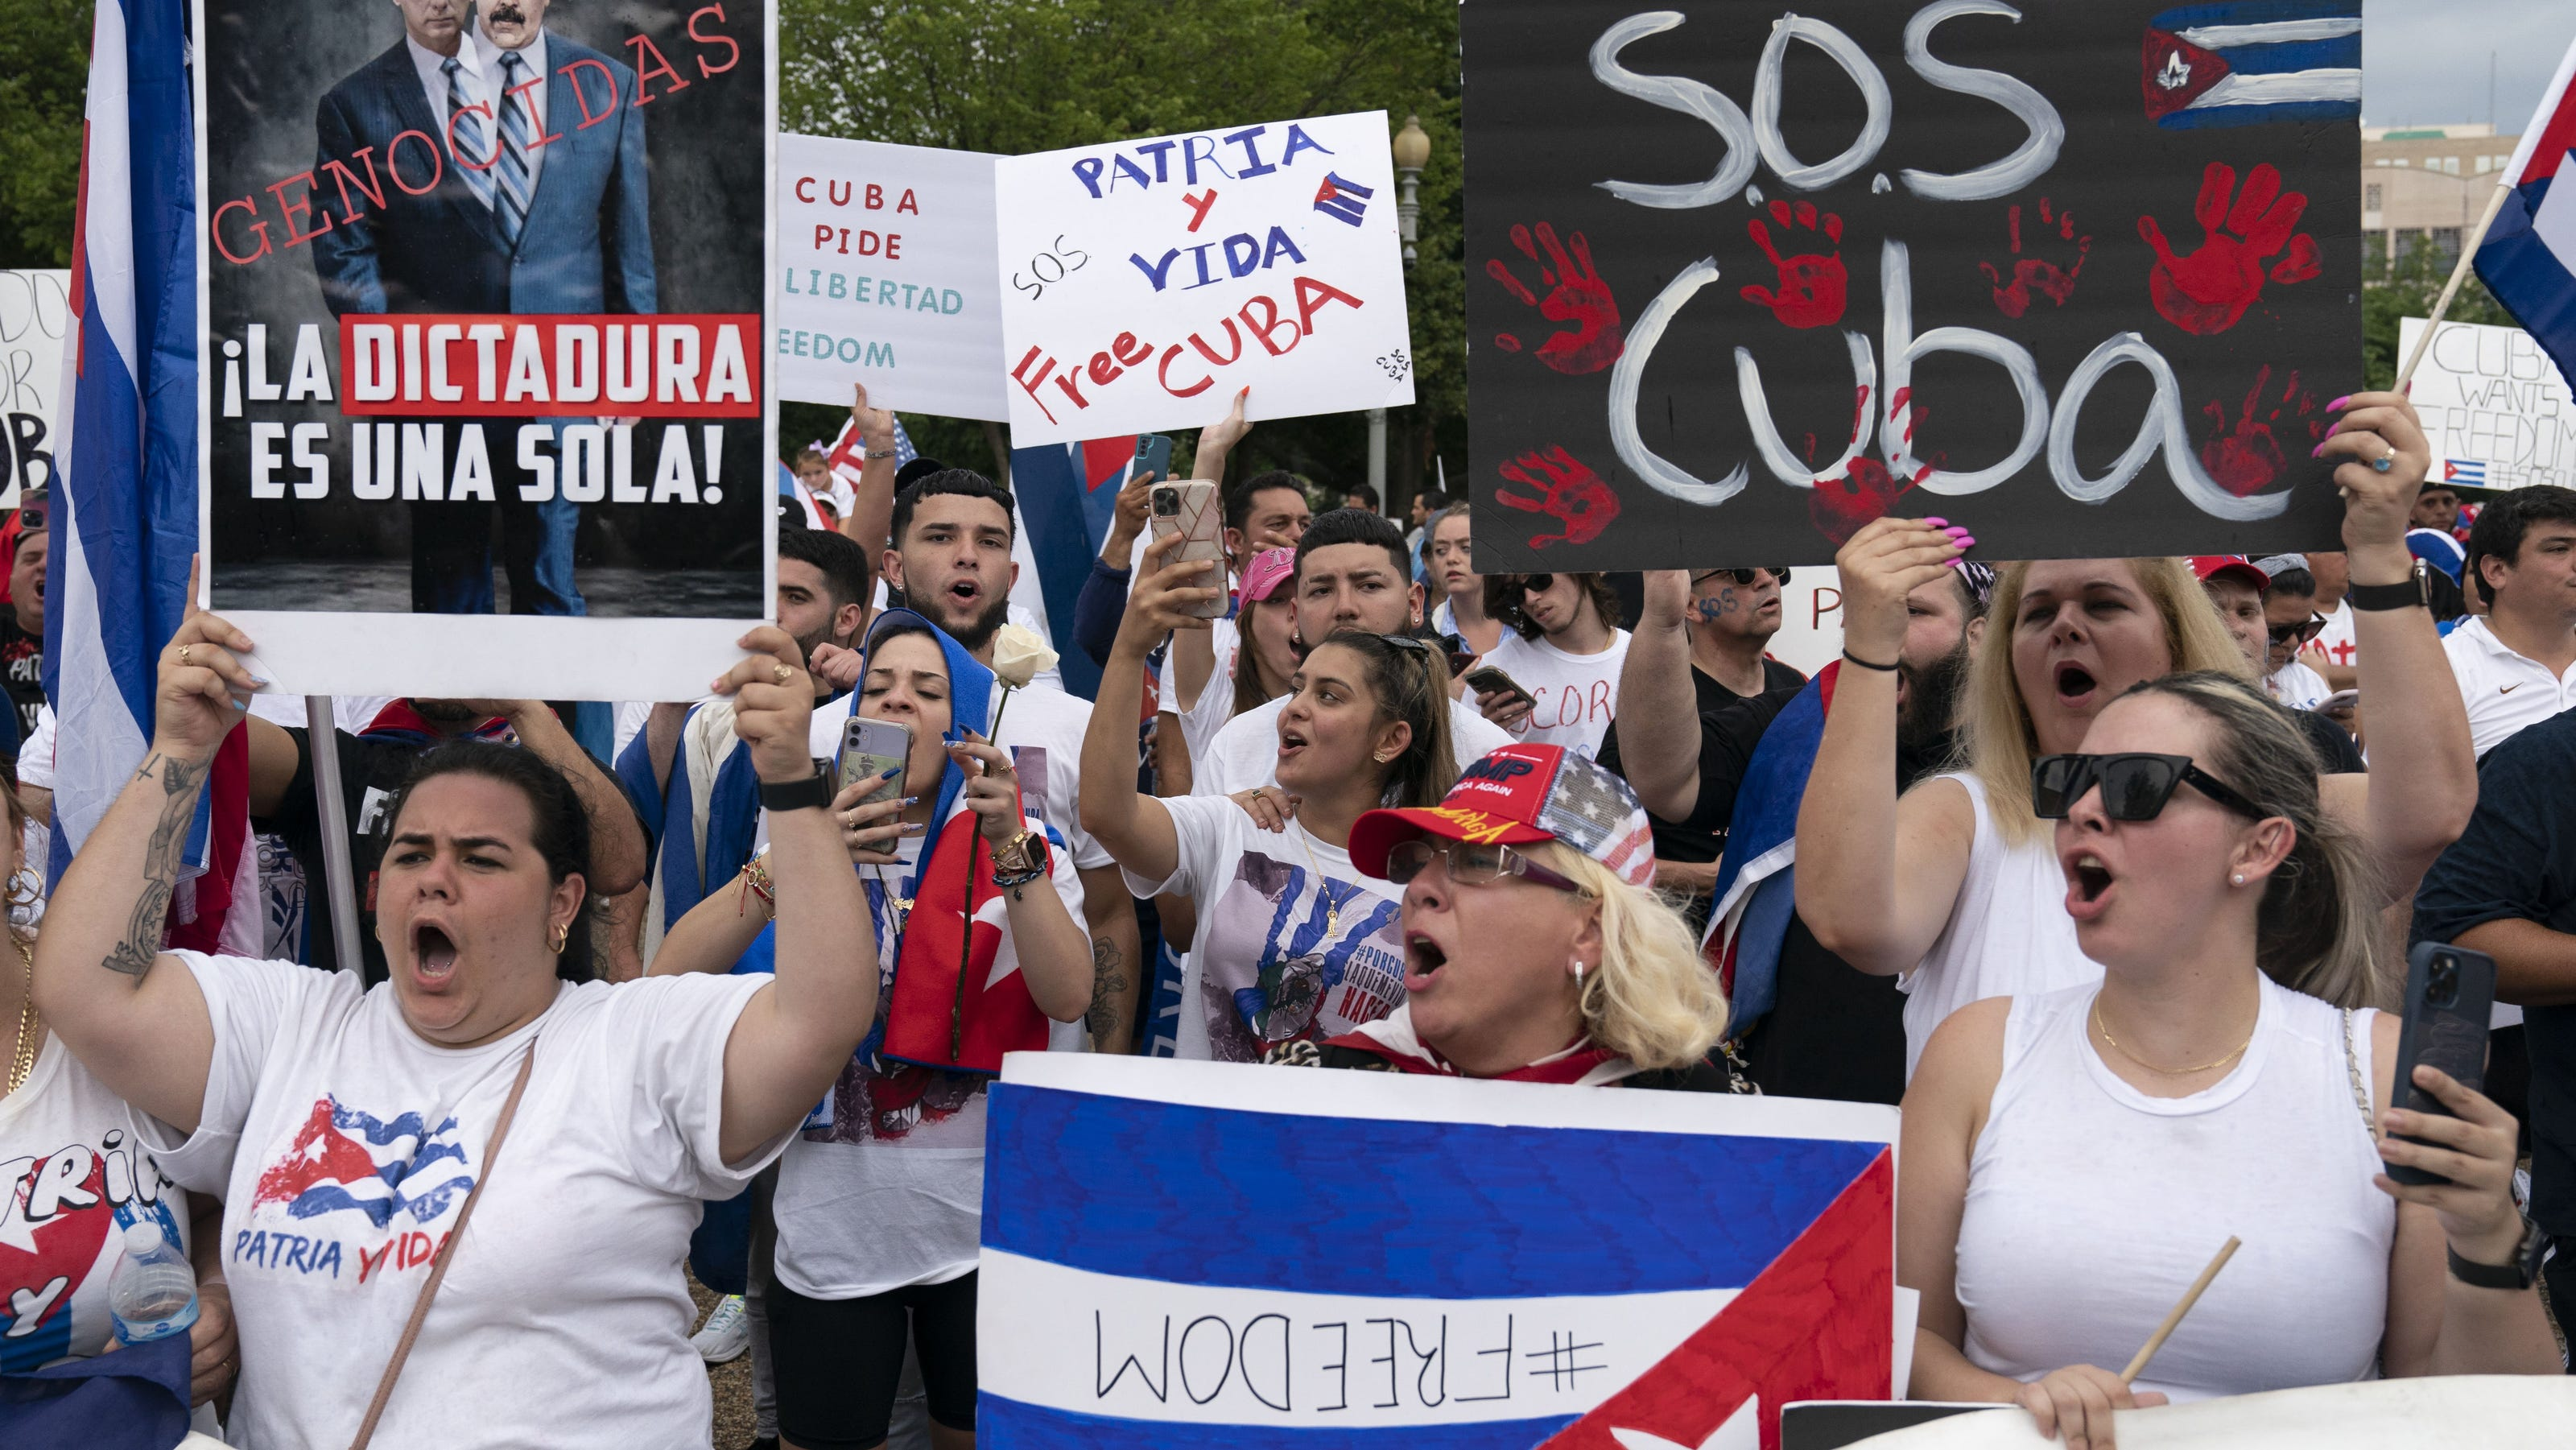 History tells us that Cuba protests are groundbreaking